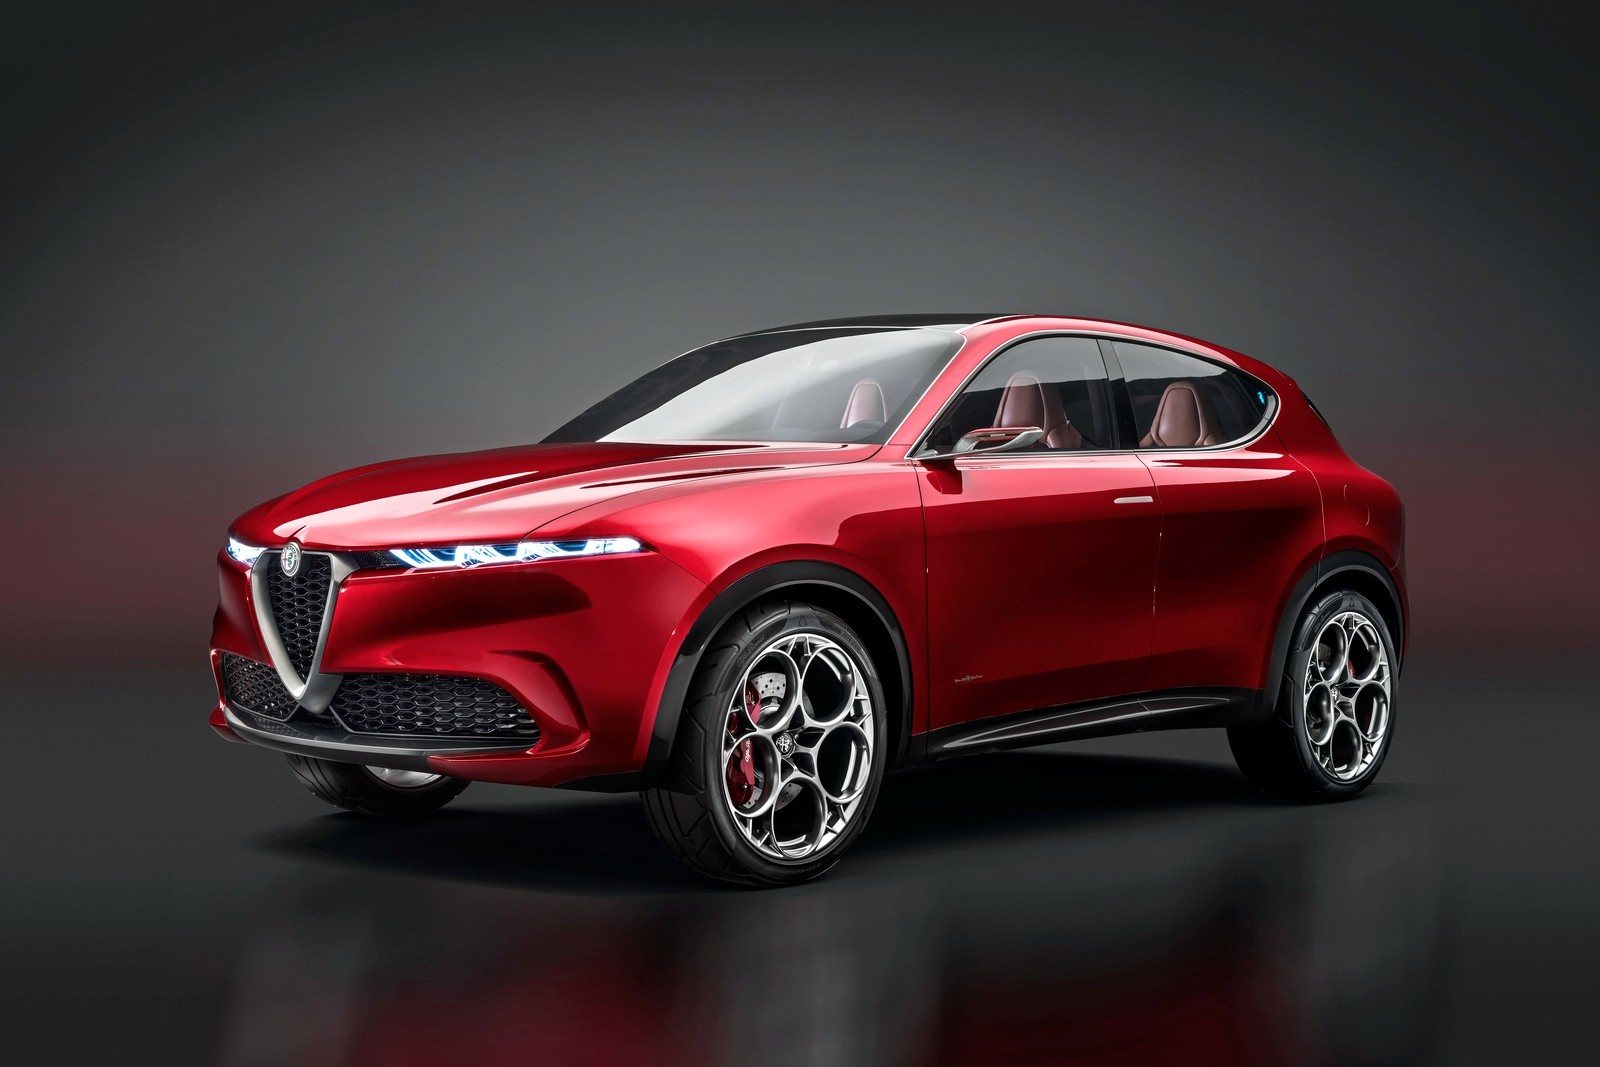 Rumor: Alfa Romeo to celebrate 110 years with an all-new car launch - Forma car News